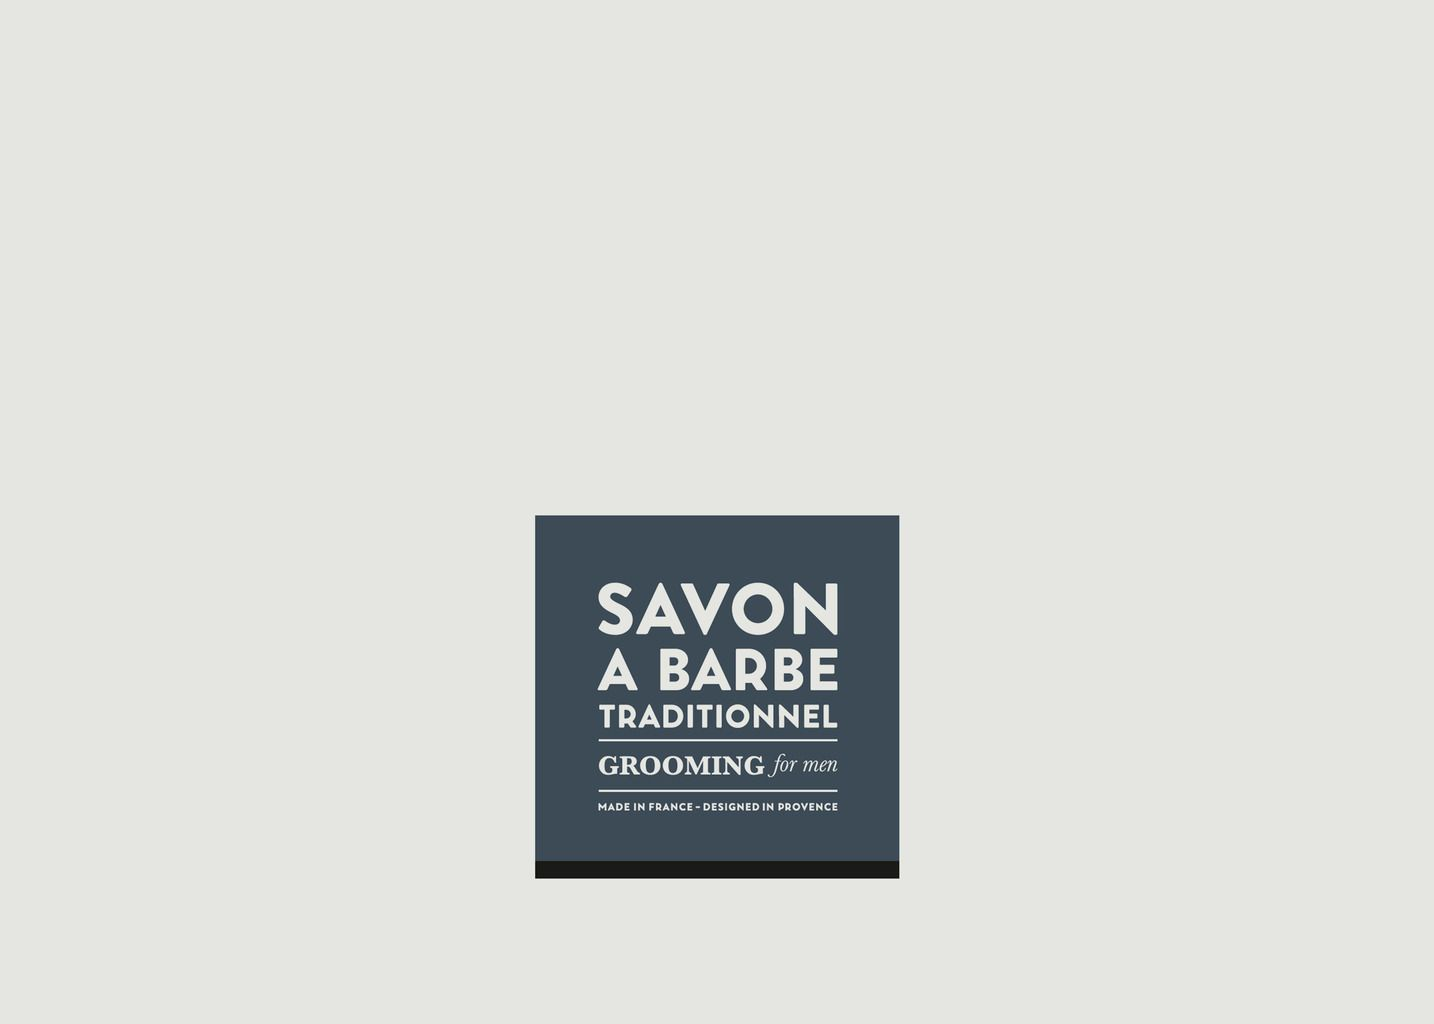 Savon à Barbe Traditionnel Grooming for Men 100g - La Compagnie de Provence